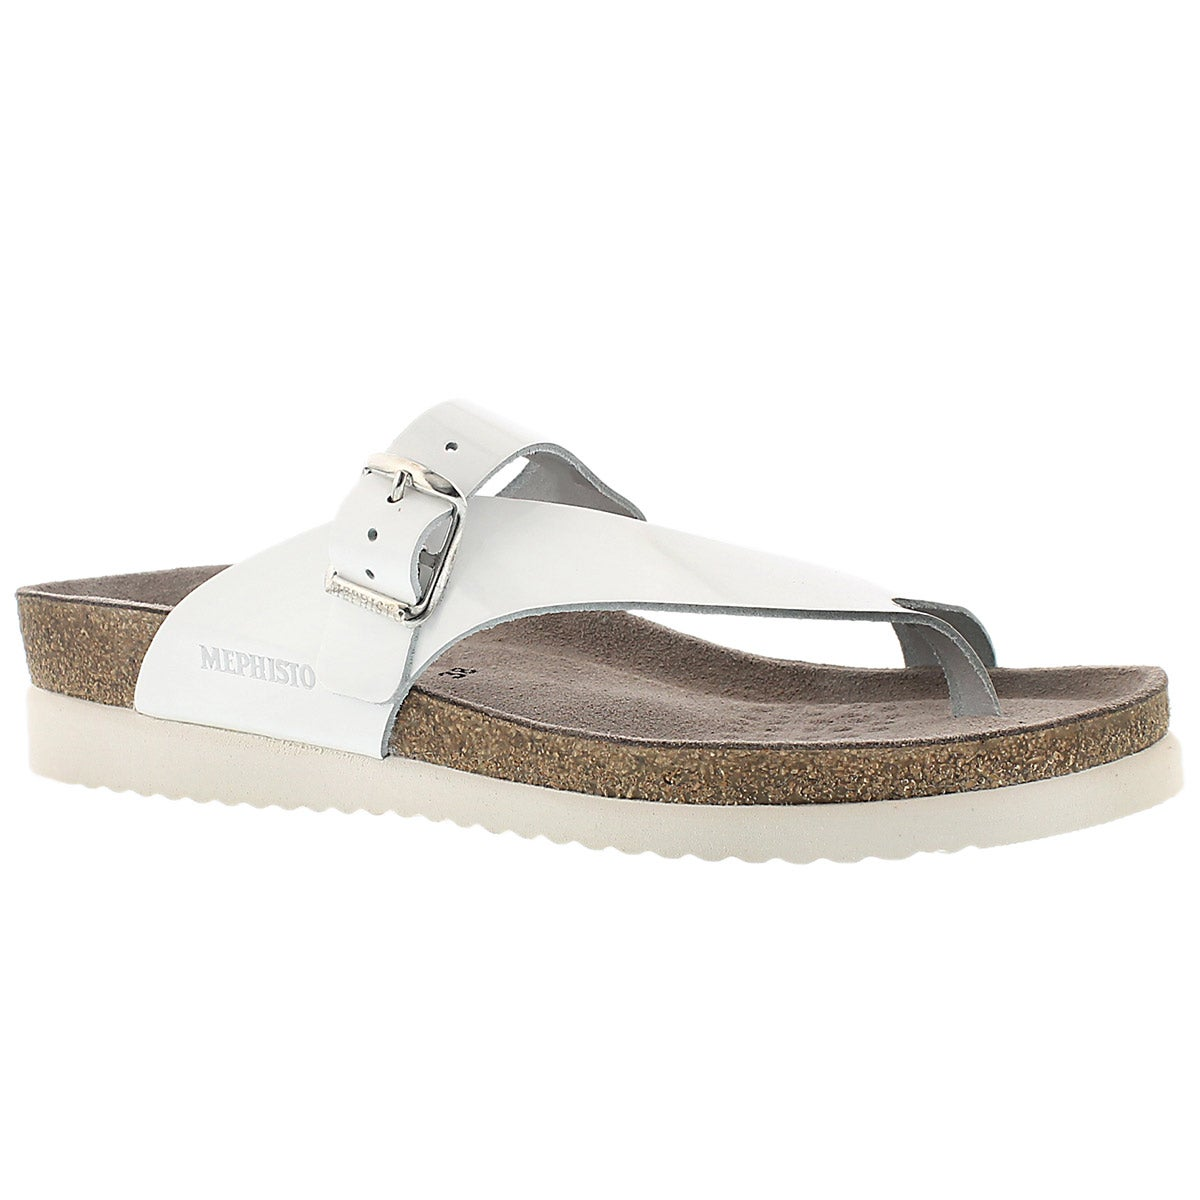 Women's HELEN white patent thong sandals